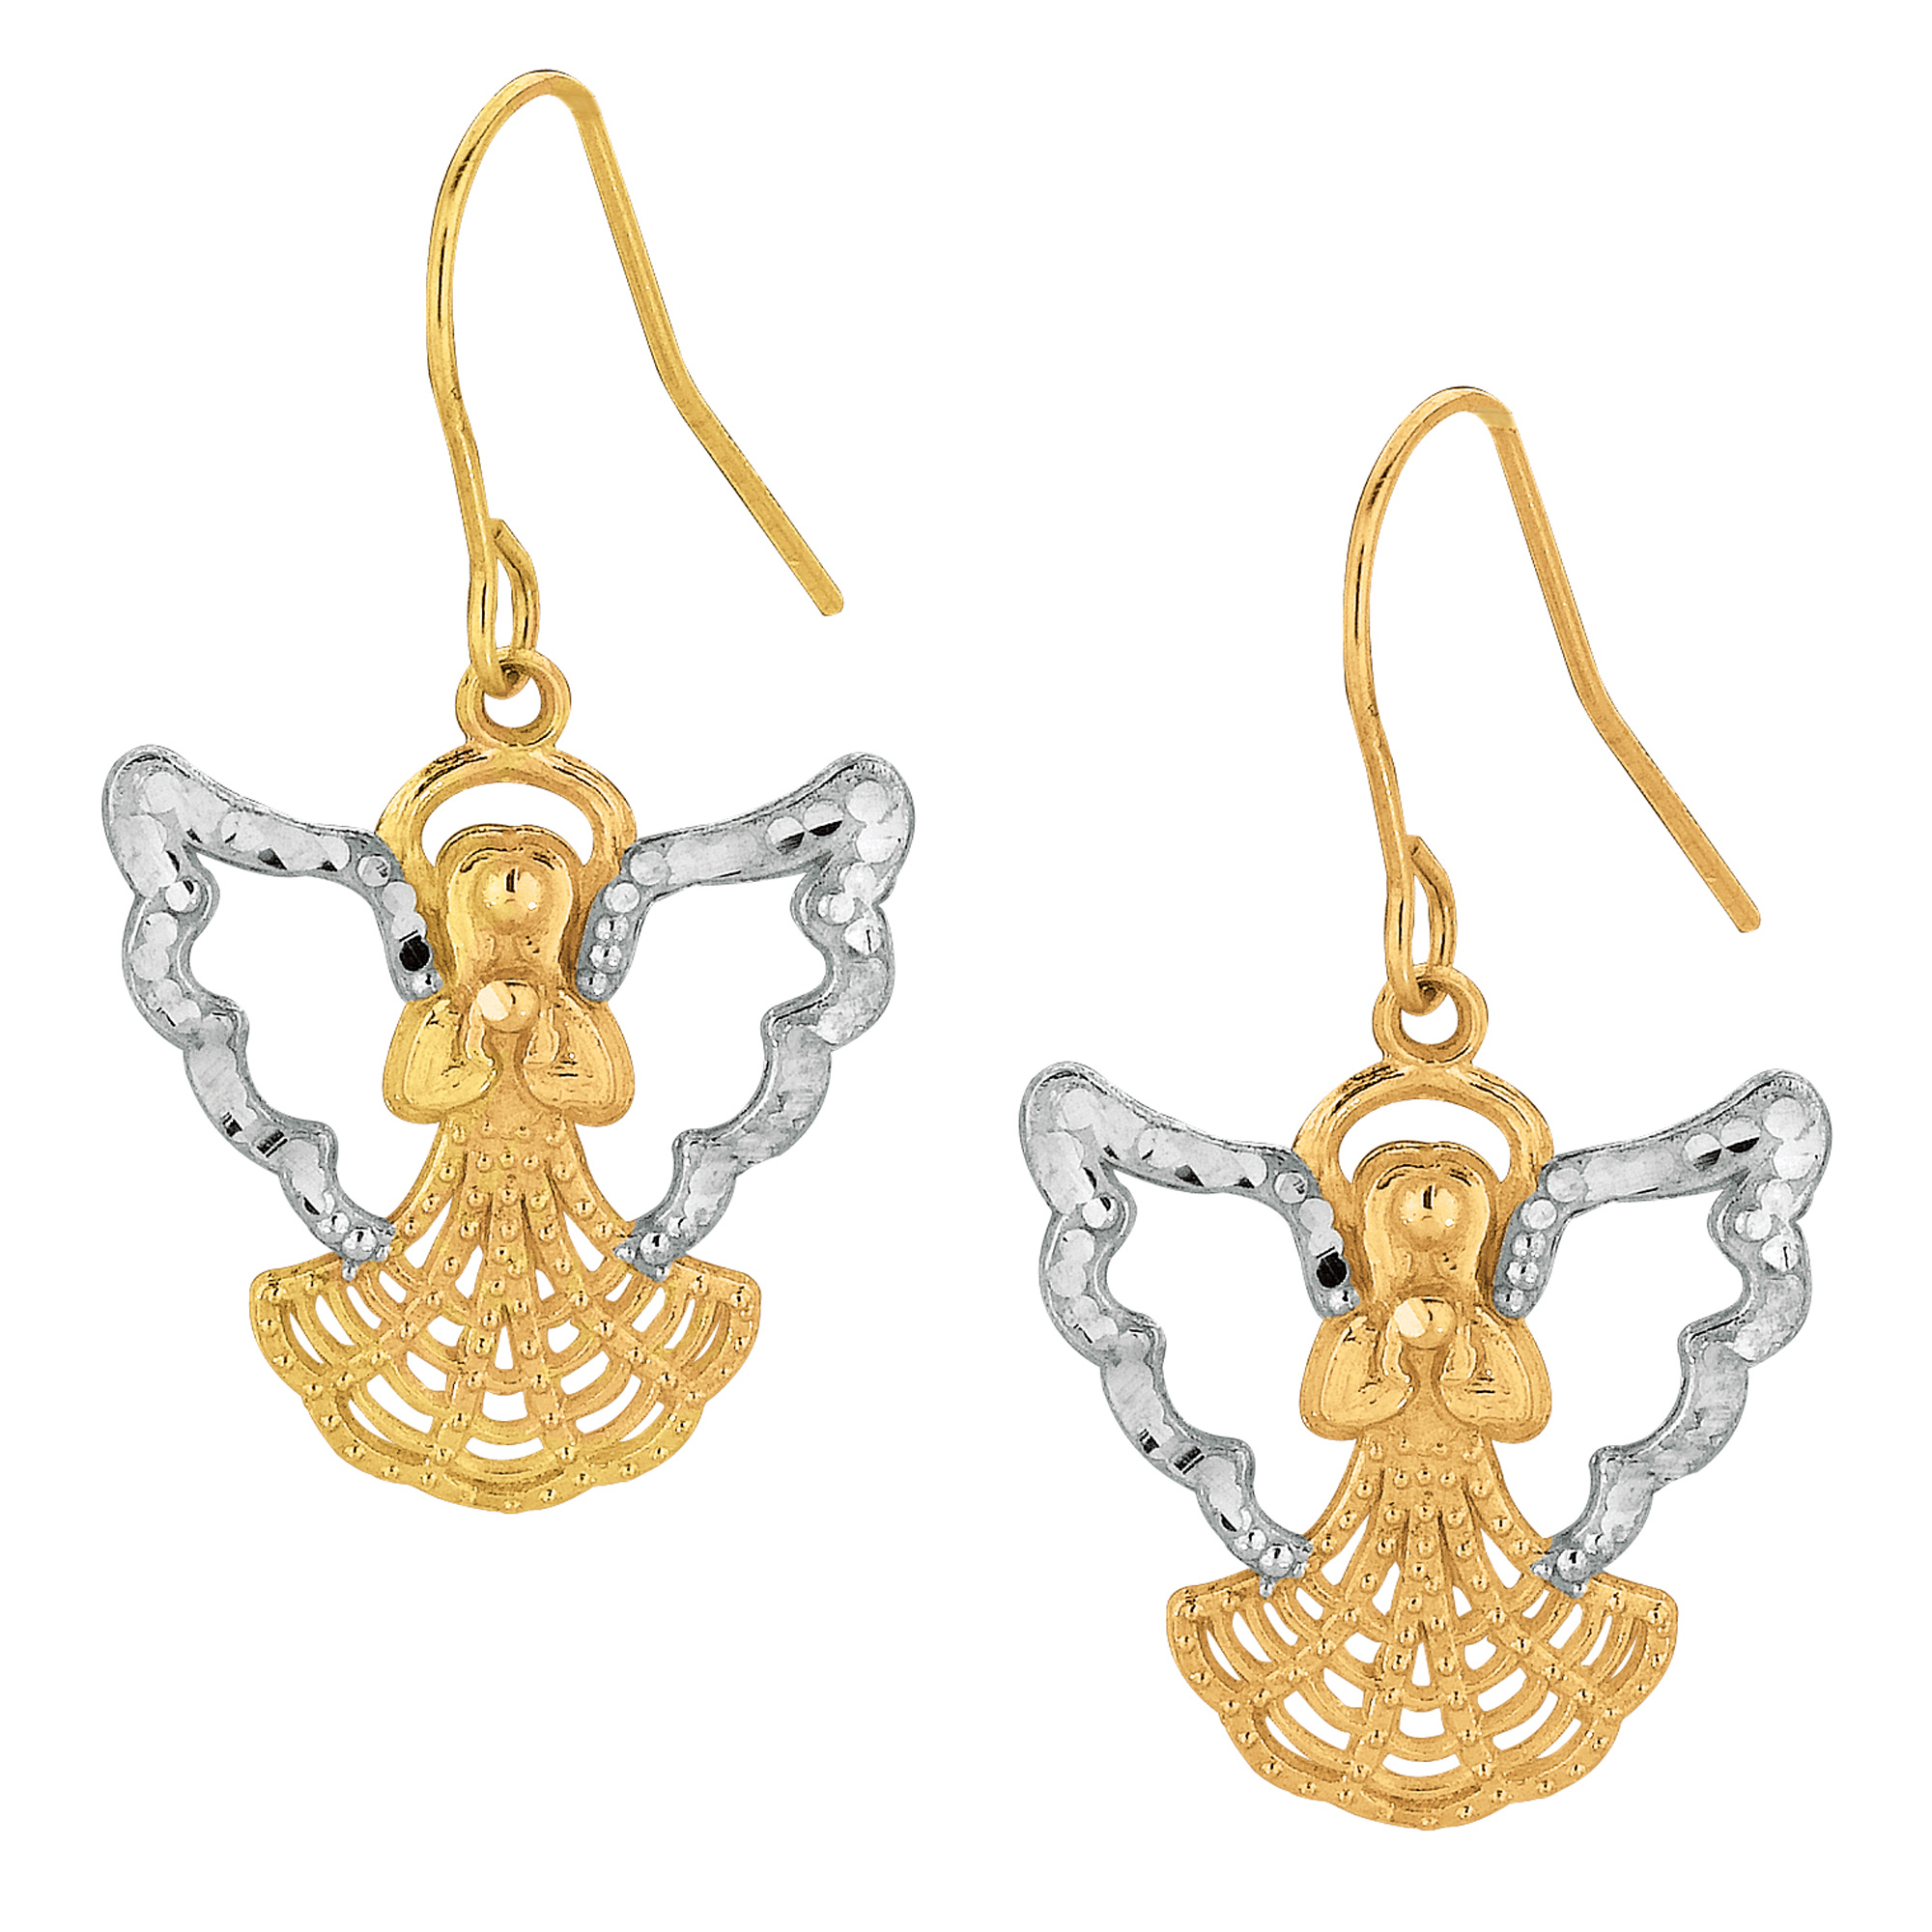 10k 2 Tone Yellow And White Gold Angel Drop Earrings Complete your jewelry collection with a gorgeous pair of 10Kt gold angel shaped dangle earrings. These 2 tone earrings have a  French wire clasp making them easy to wear and remove.